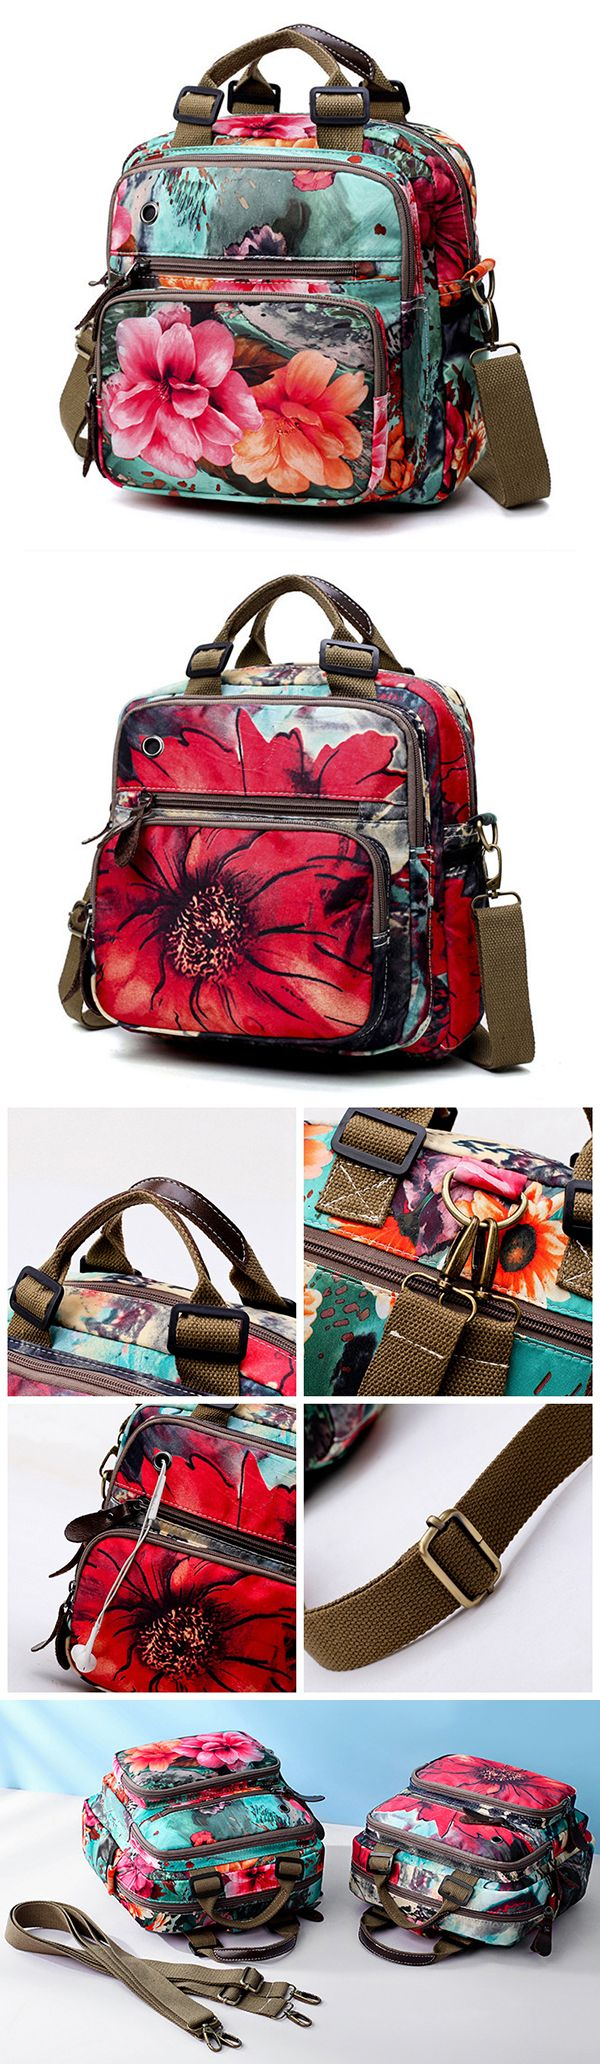 Flower Pattern Shoulder Bag/Crossbody Bag/Mommy Backpack #fashion #outdoors #style #love